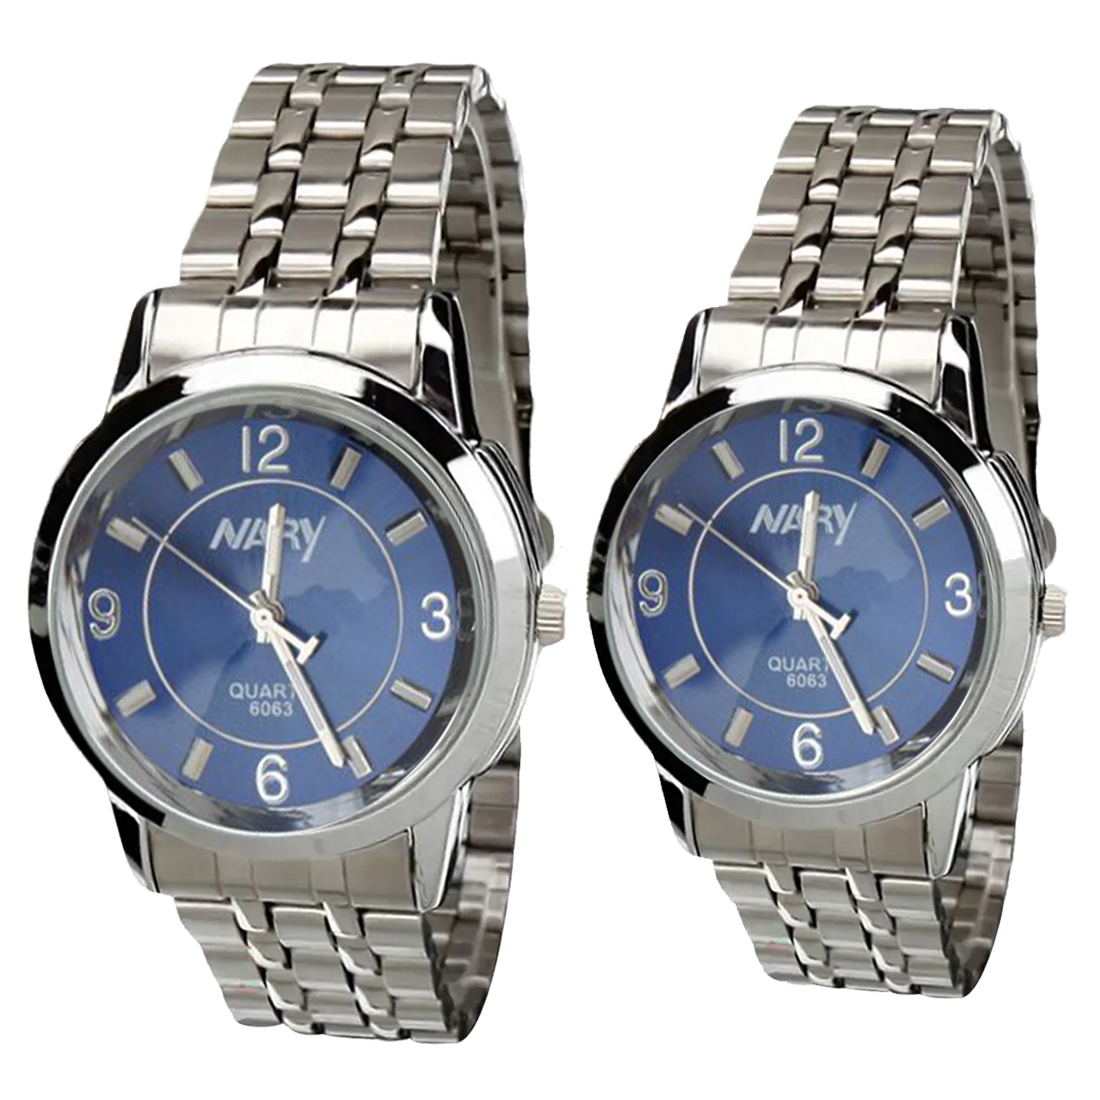 NARY Lovers Silver/Blue Stainless Steel Strap Watch 6063 product preview, discount at cheapest price